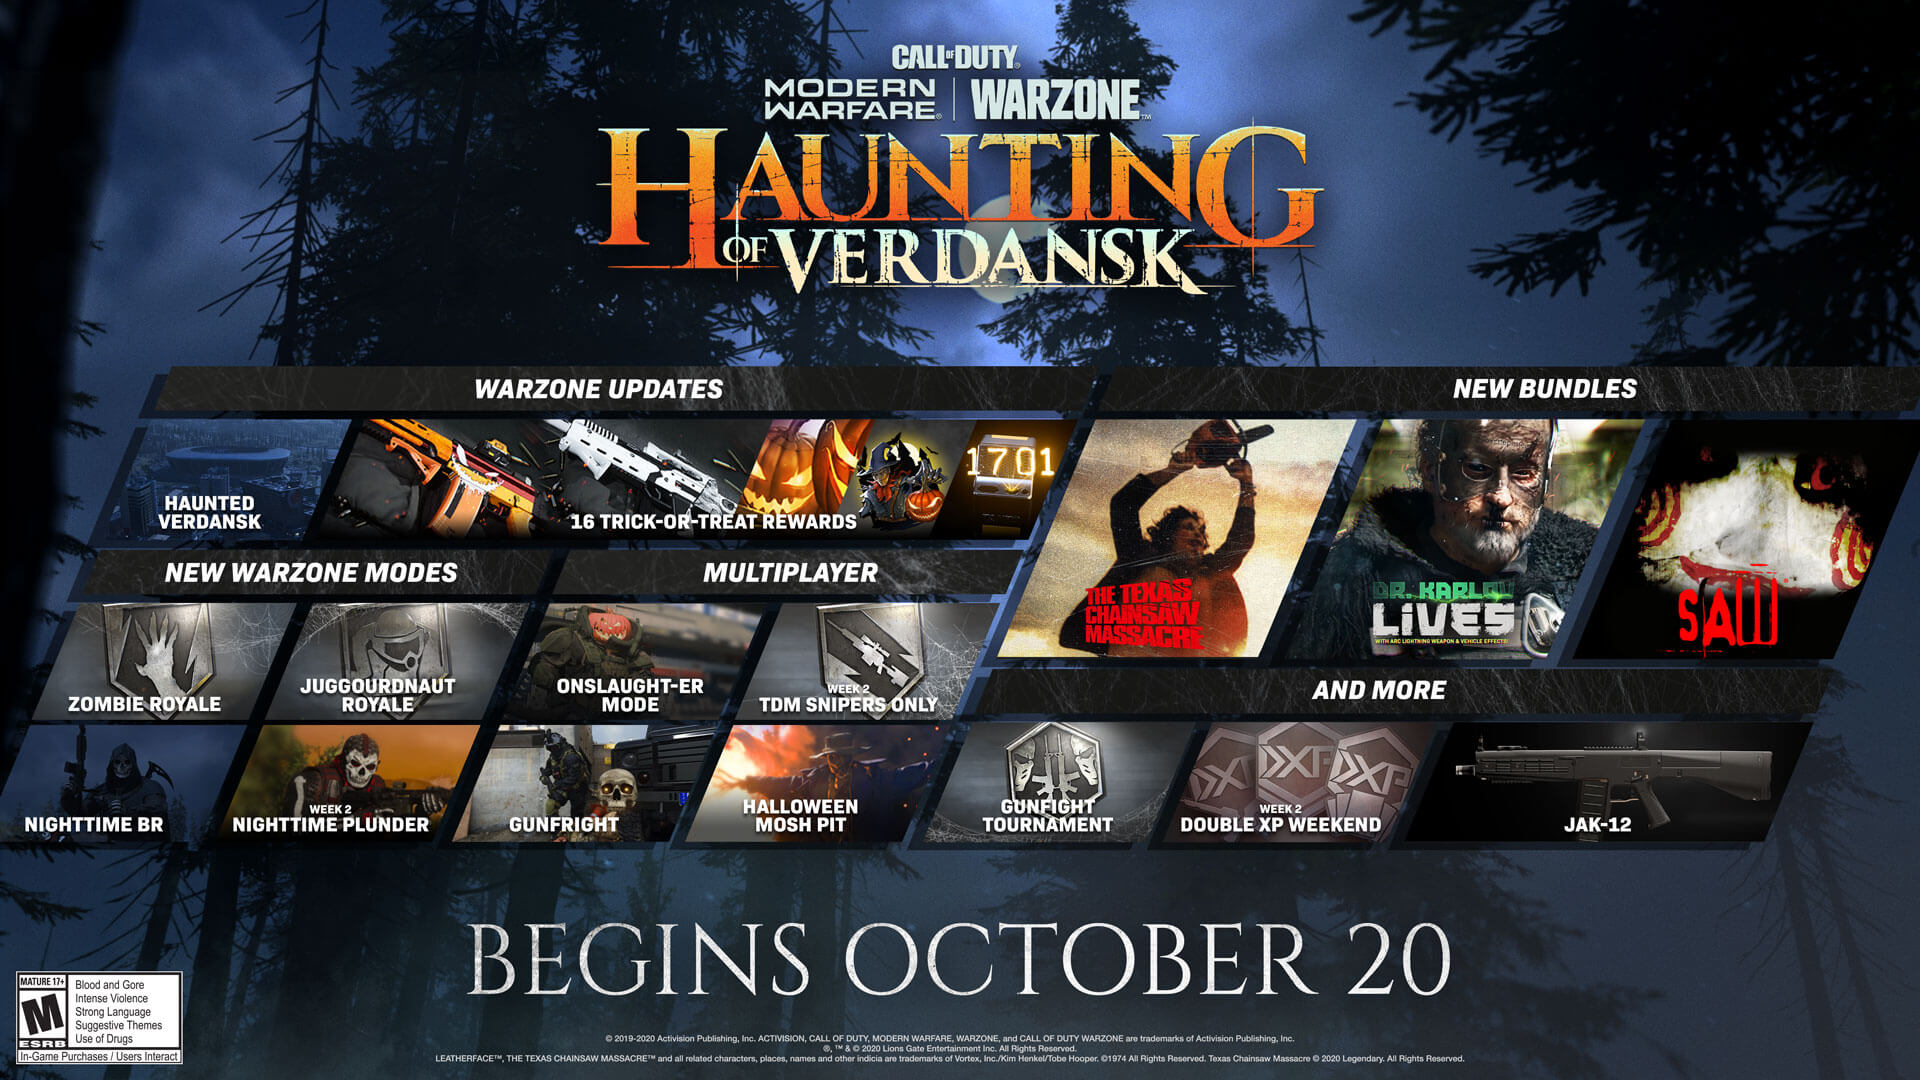 Call of Duty Haunting of Verdansk ¿Truco o Trato?